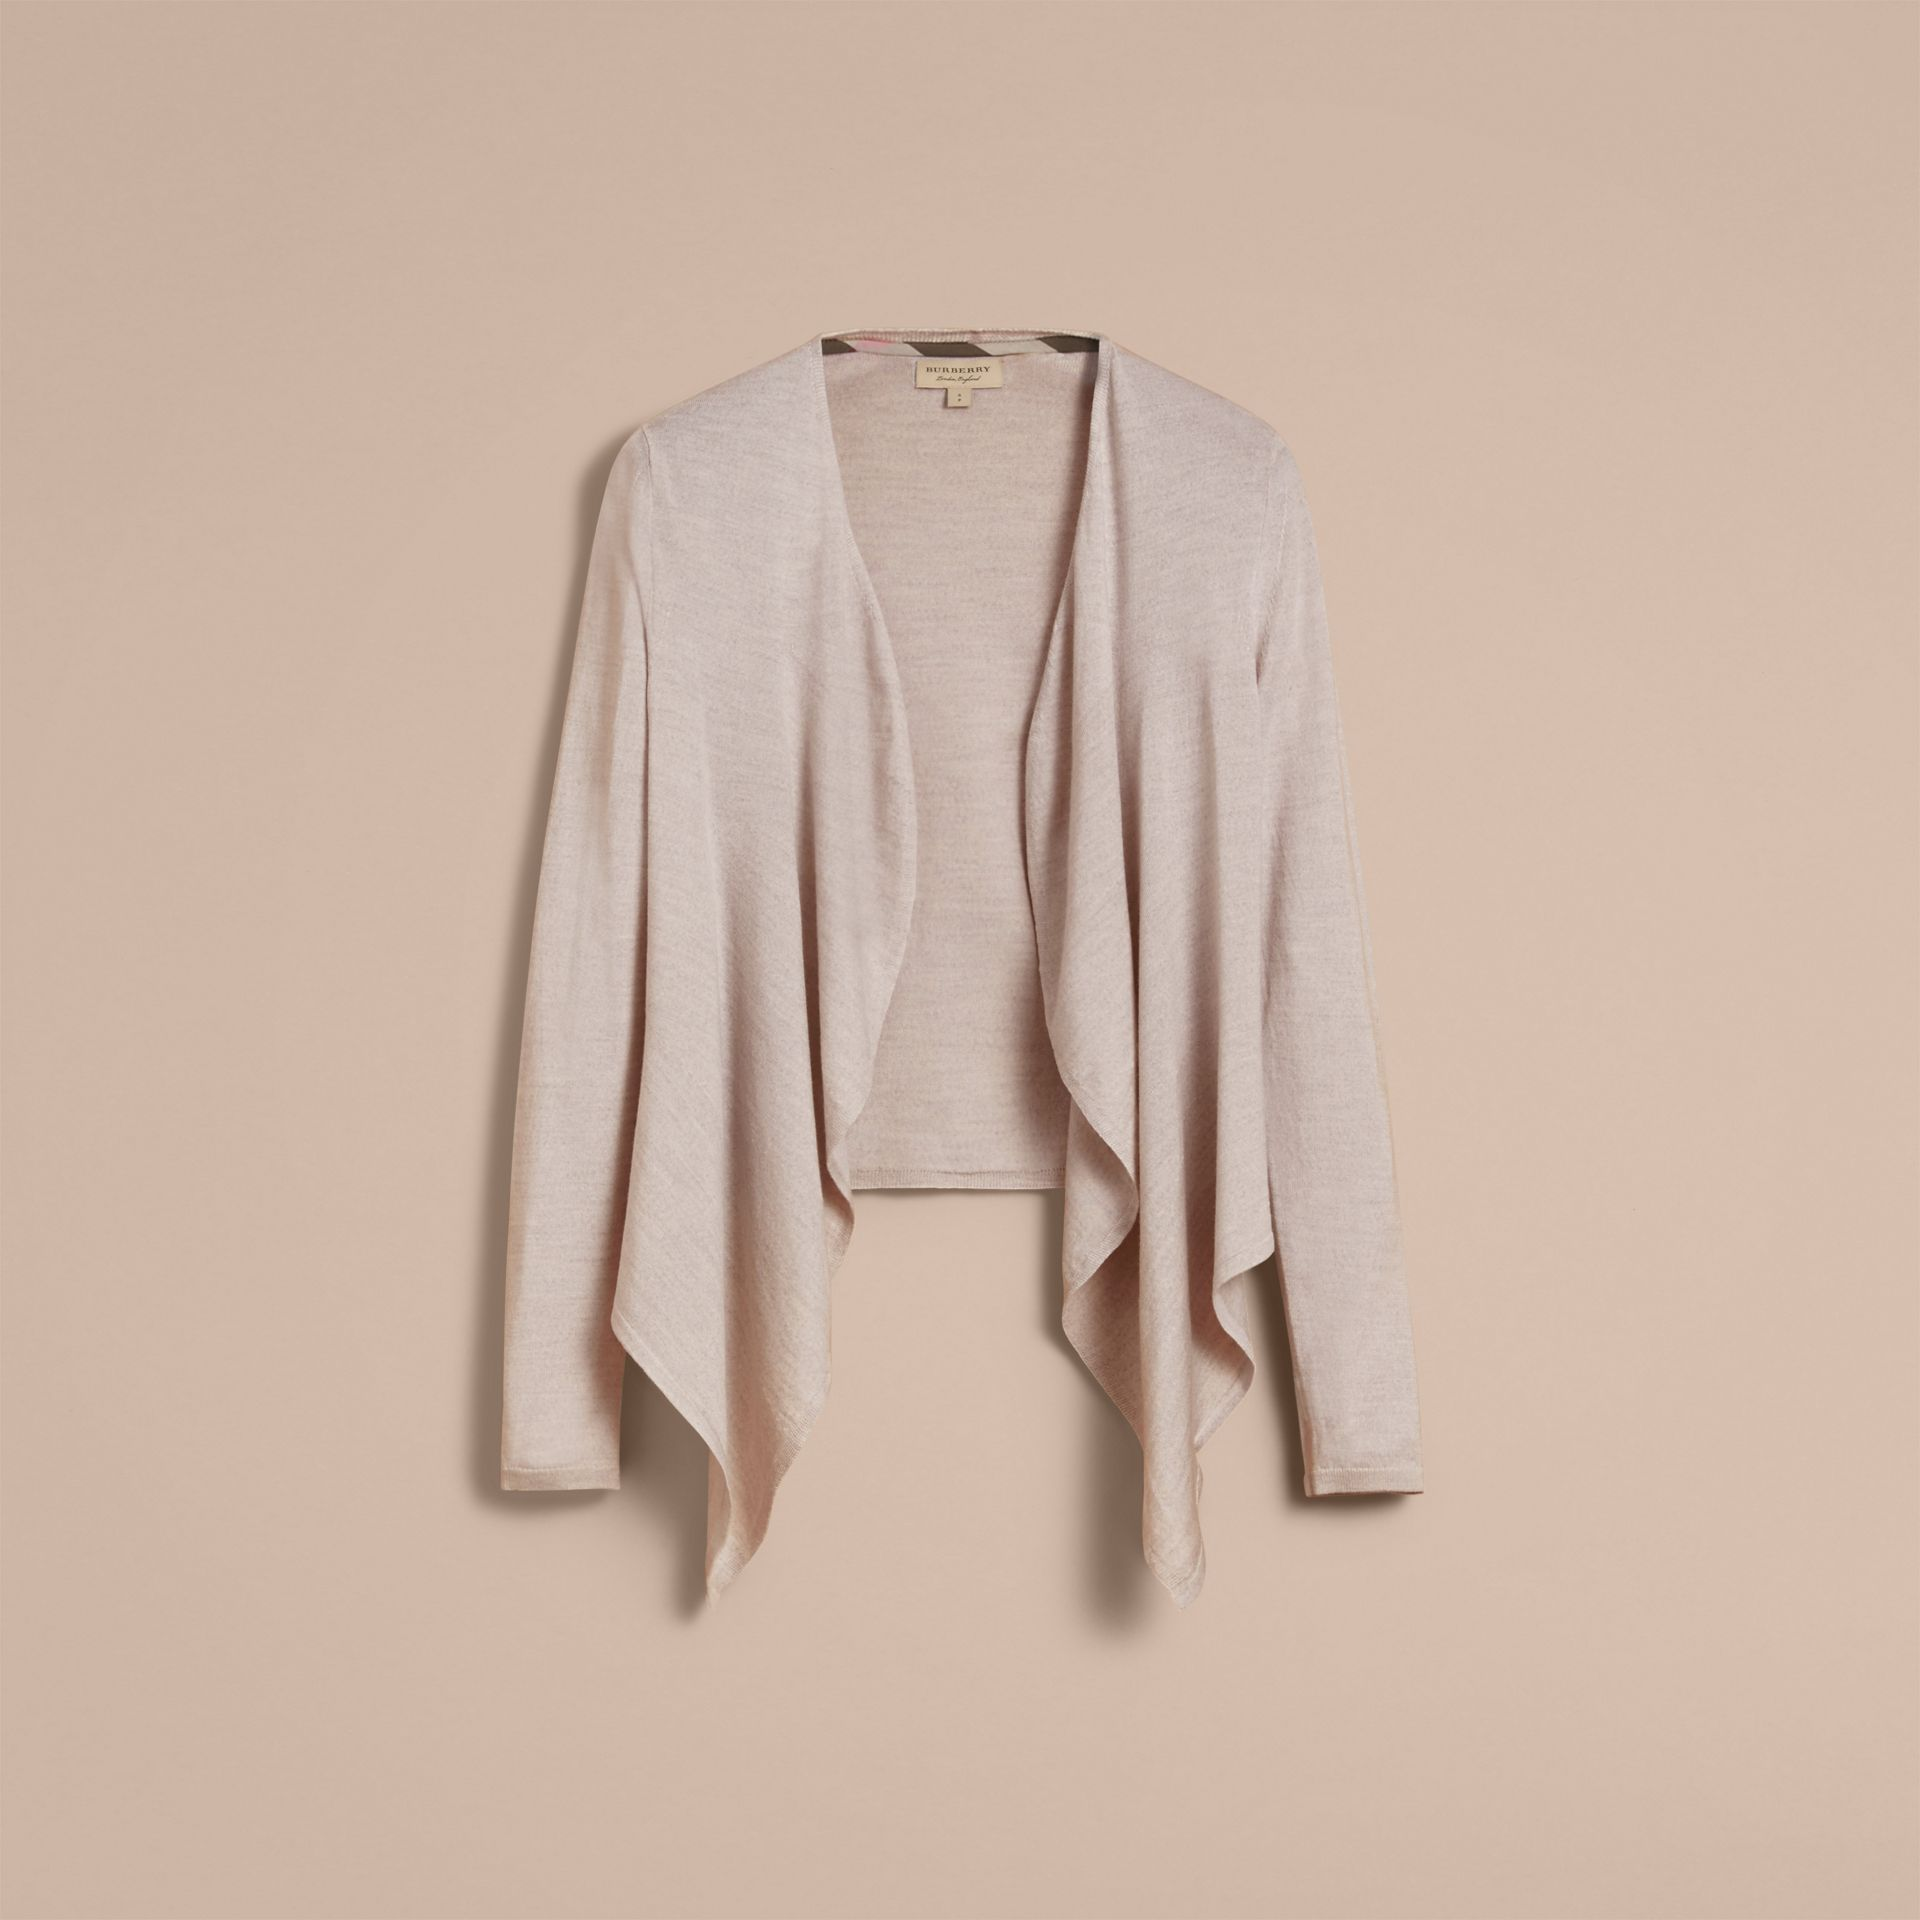 Merino Wool Silk Open Cardigan in Light Grey Melange - Women | Burberry United Kingdom - gallery image 4